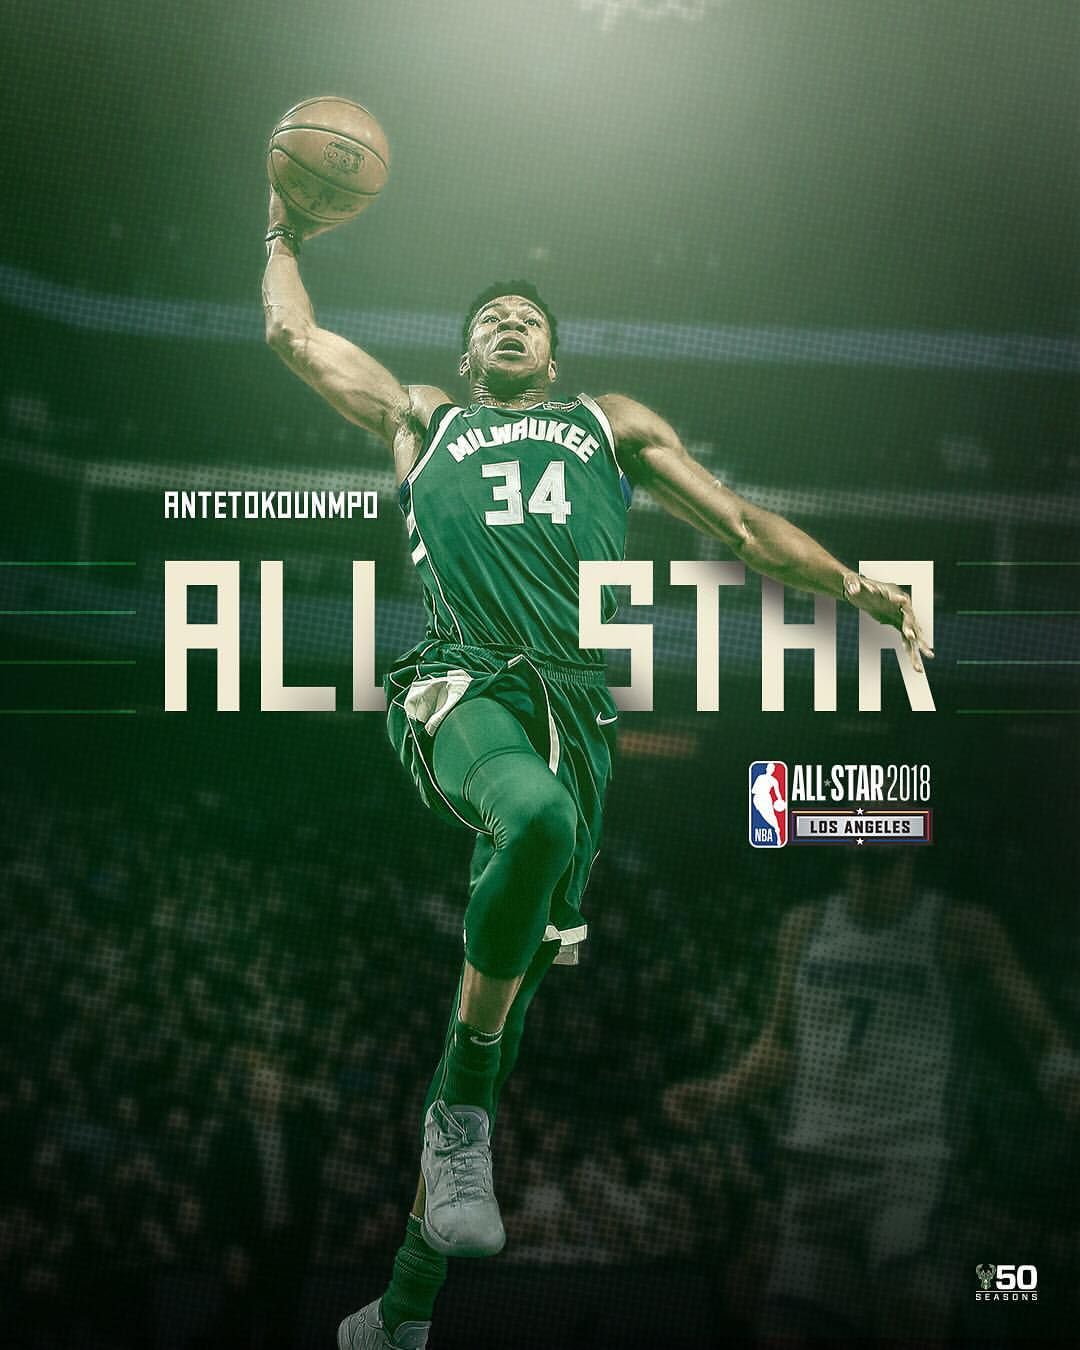 For The Second Consecutive Year Giannis Antetokounmpo Has Been Voted A Starter In The All Star G Giannis Antetokounmpo Wallpaper Basketball Players Nba Gianni